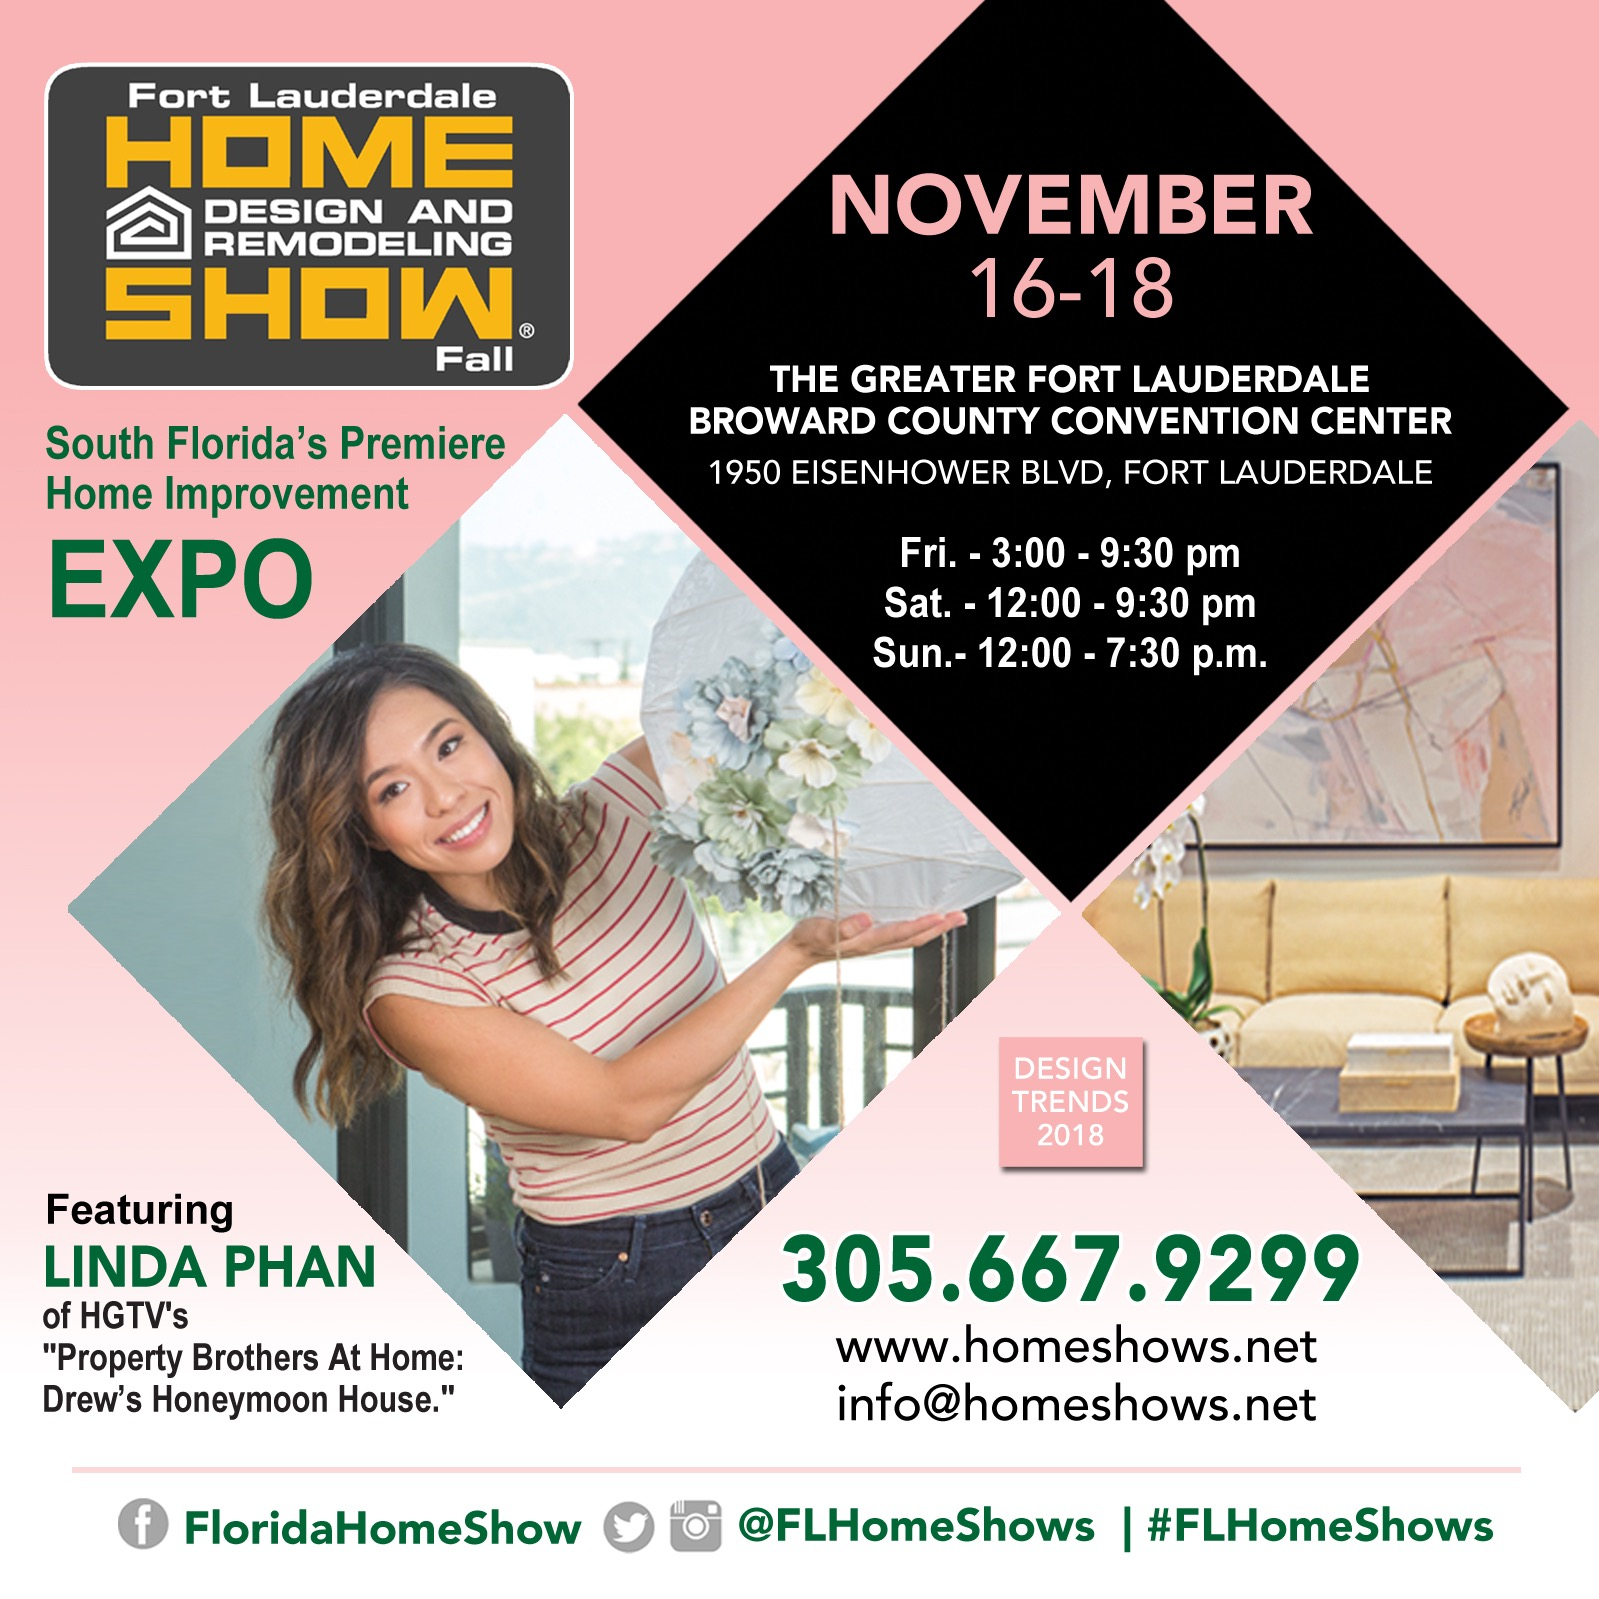 Fort Lauderdale Home Design And Remodeling Show 11 16 18 11